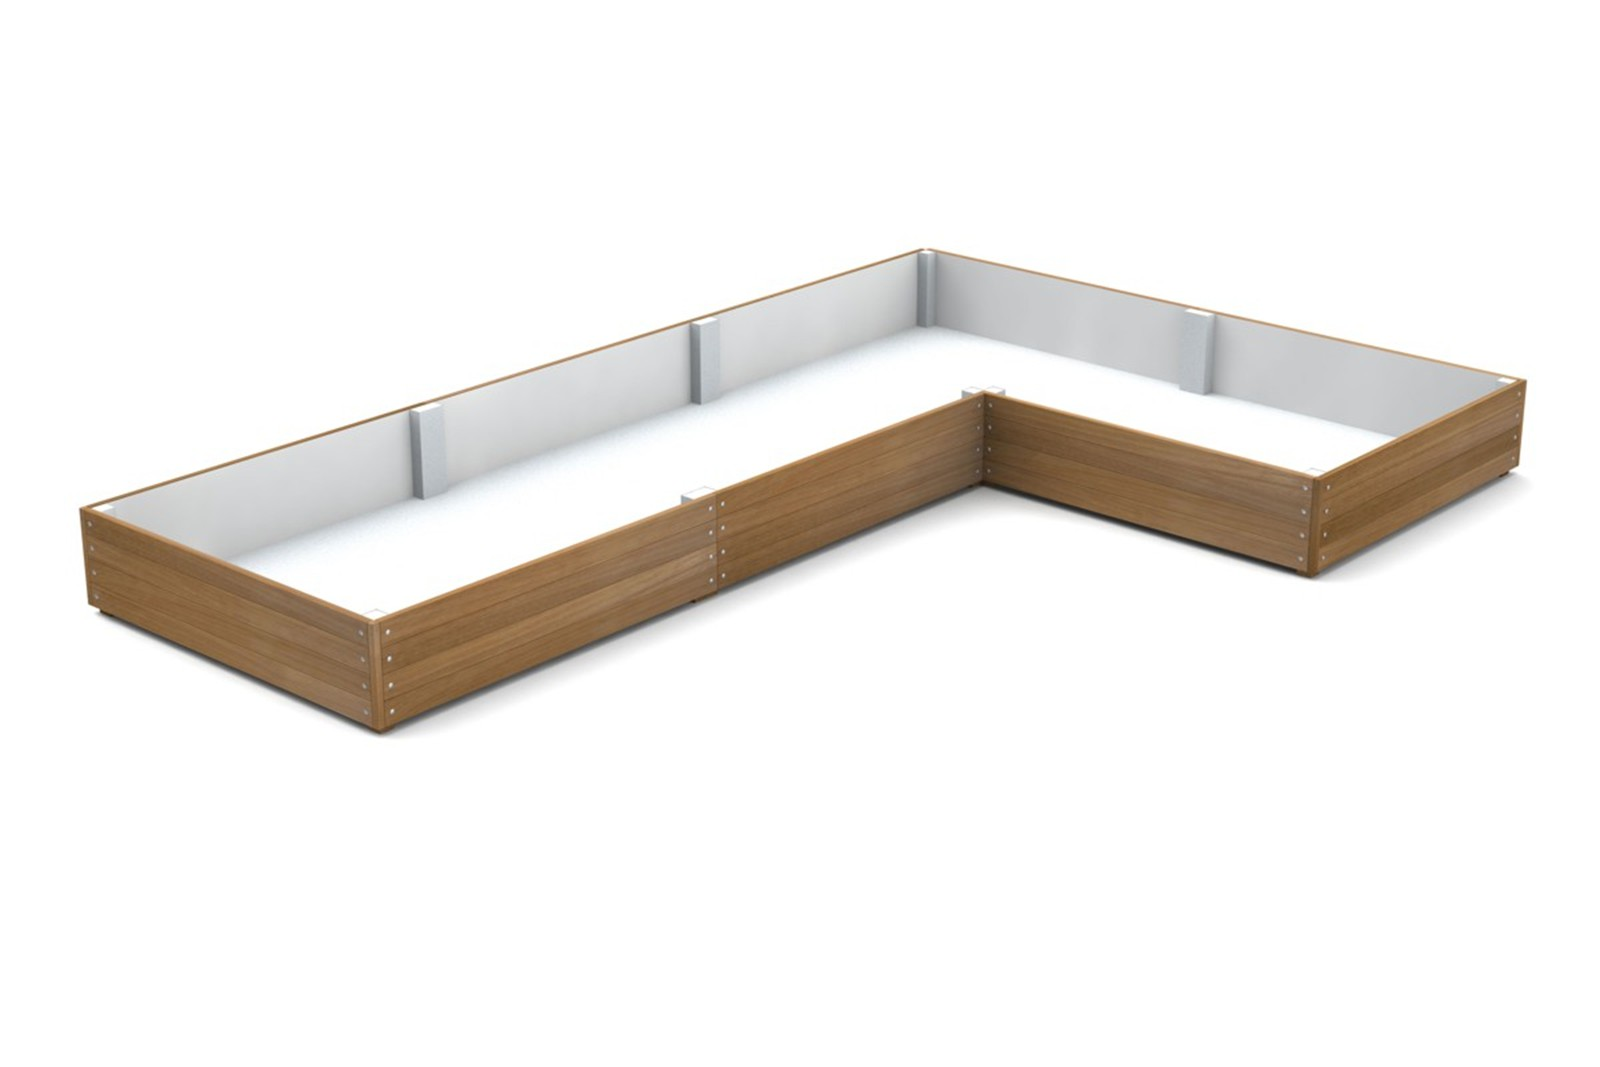 41pgr33 - Large L-shaped Grenadier planter